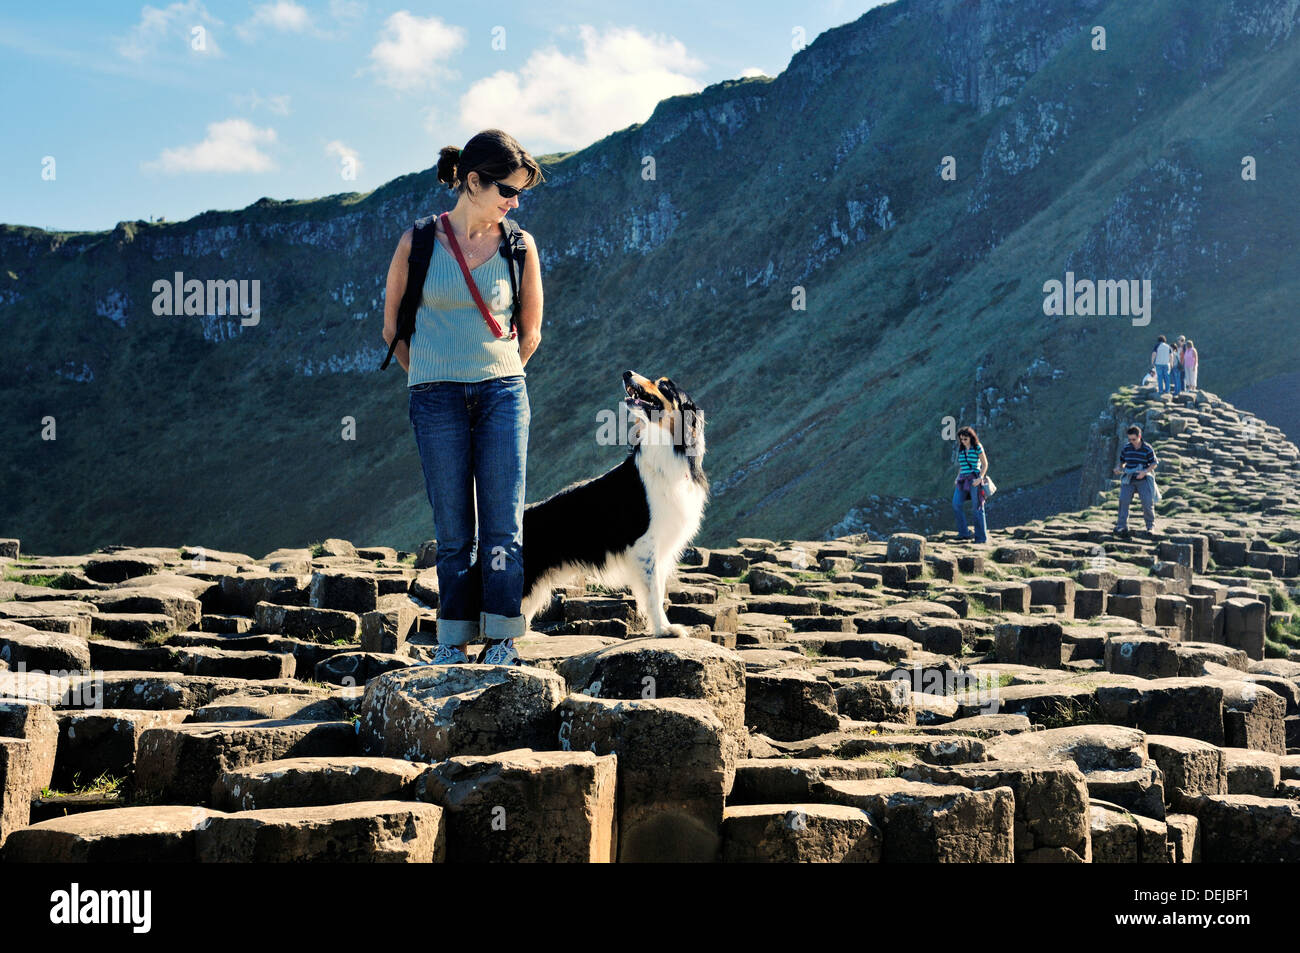 Giant's Causeway, Co. Antrim coast, Northern Ireland, UK. Young woman and border collie on basalt columns of the Grand Causeway - Stock Image